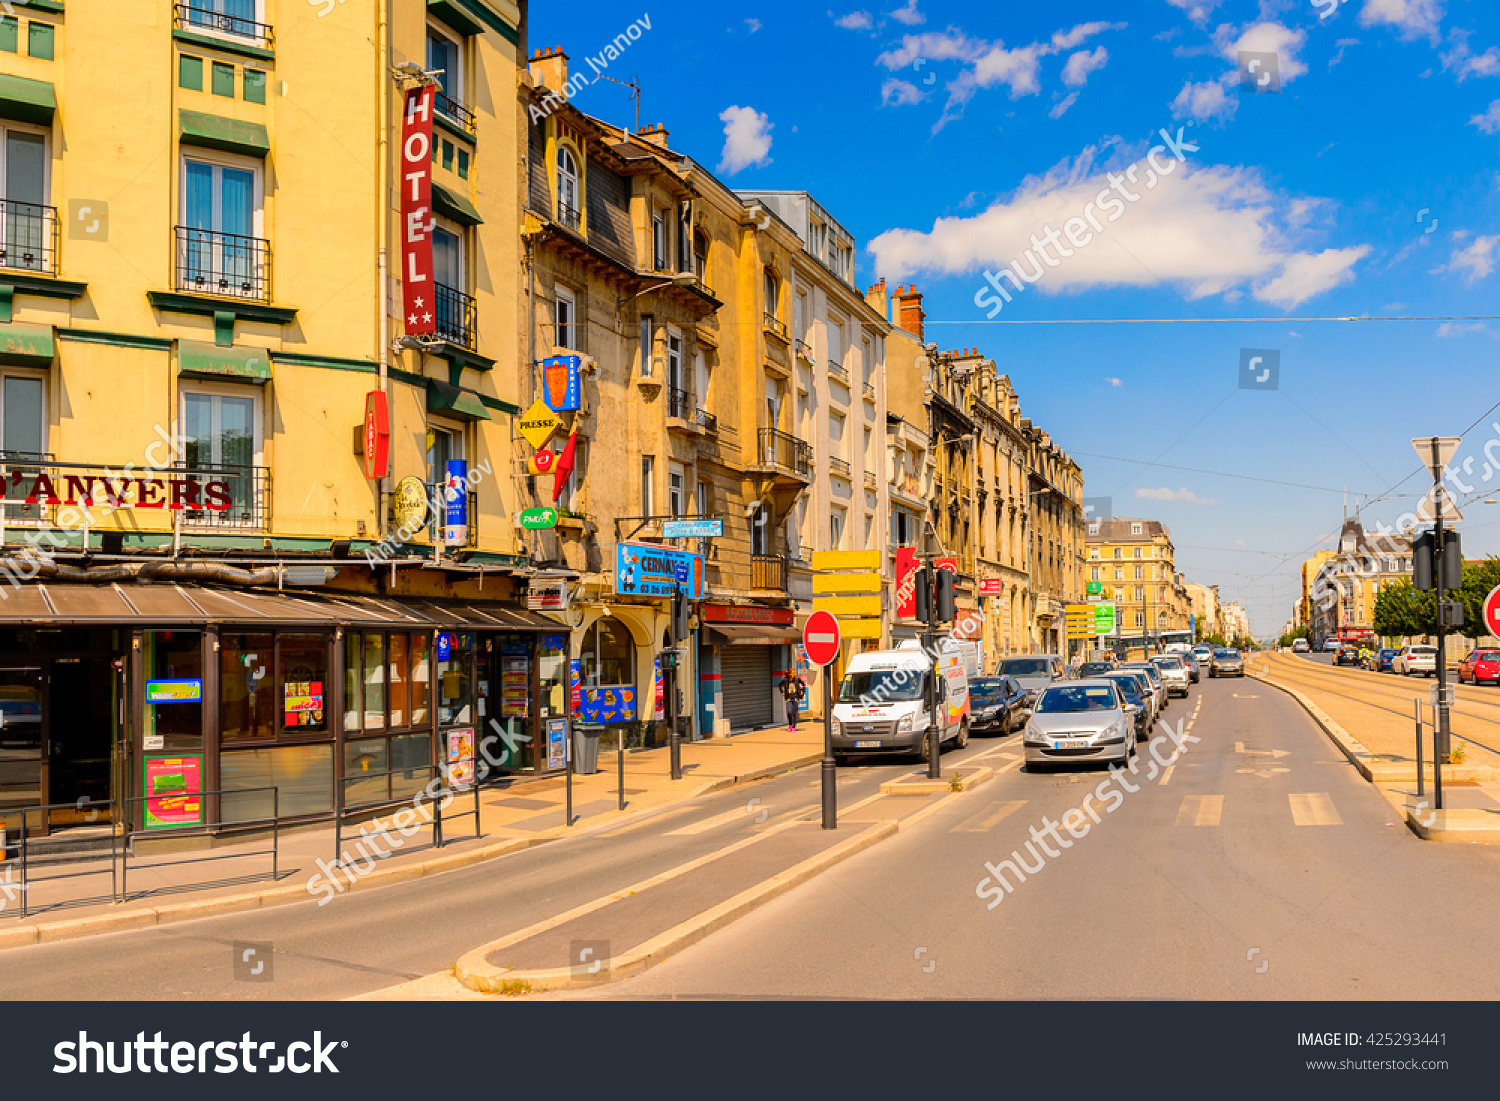 reims france jun 9 2015 buildings stock photo 425293441 shutterstock. Black Bedroom Furniture Sets. Home Design Ideas